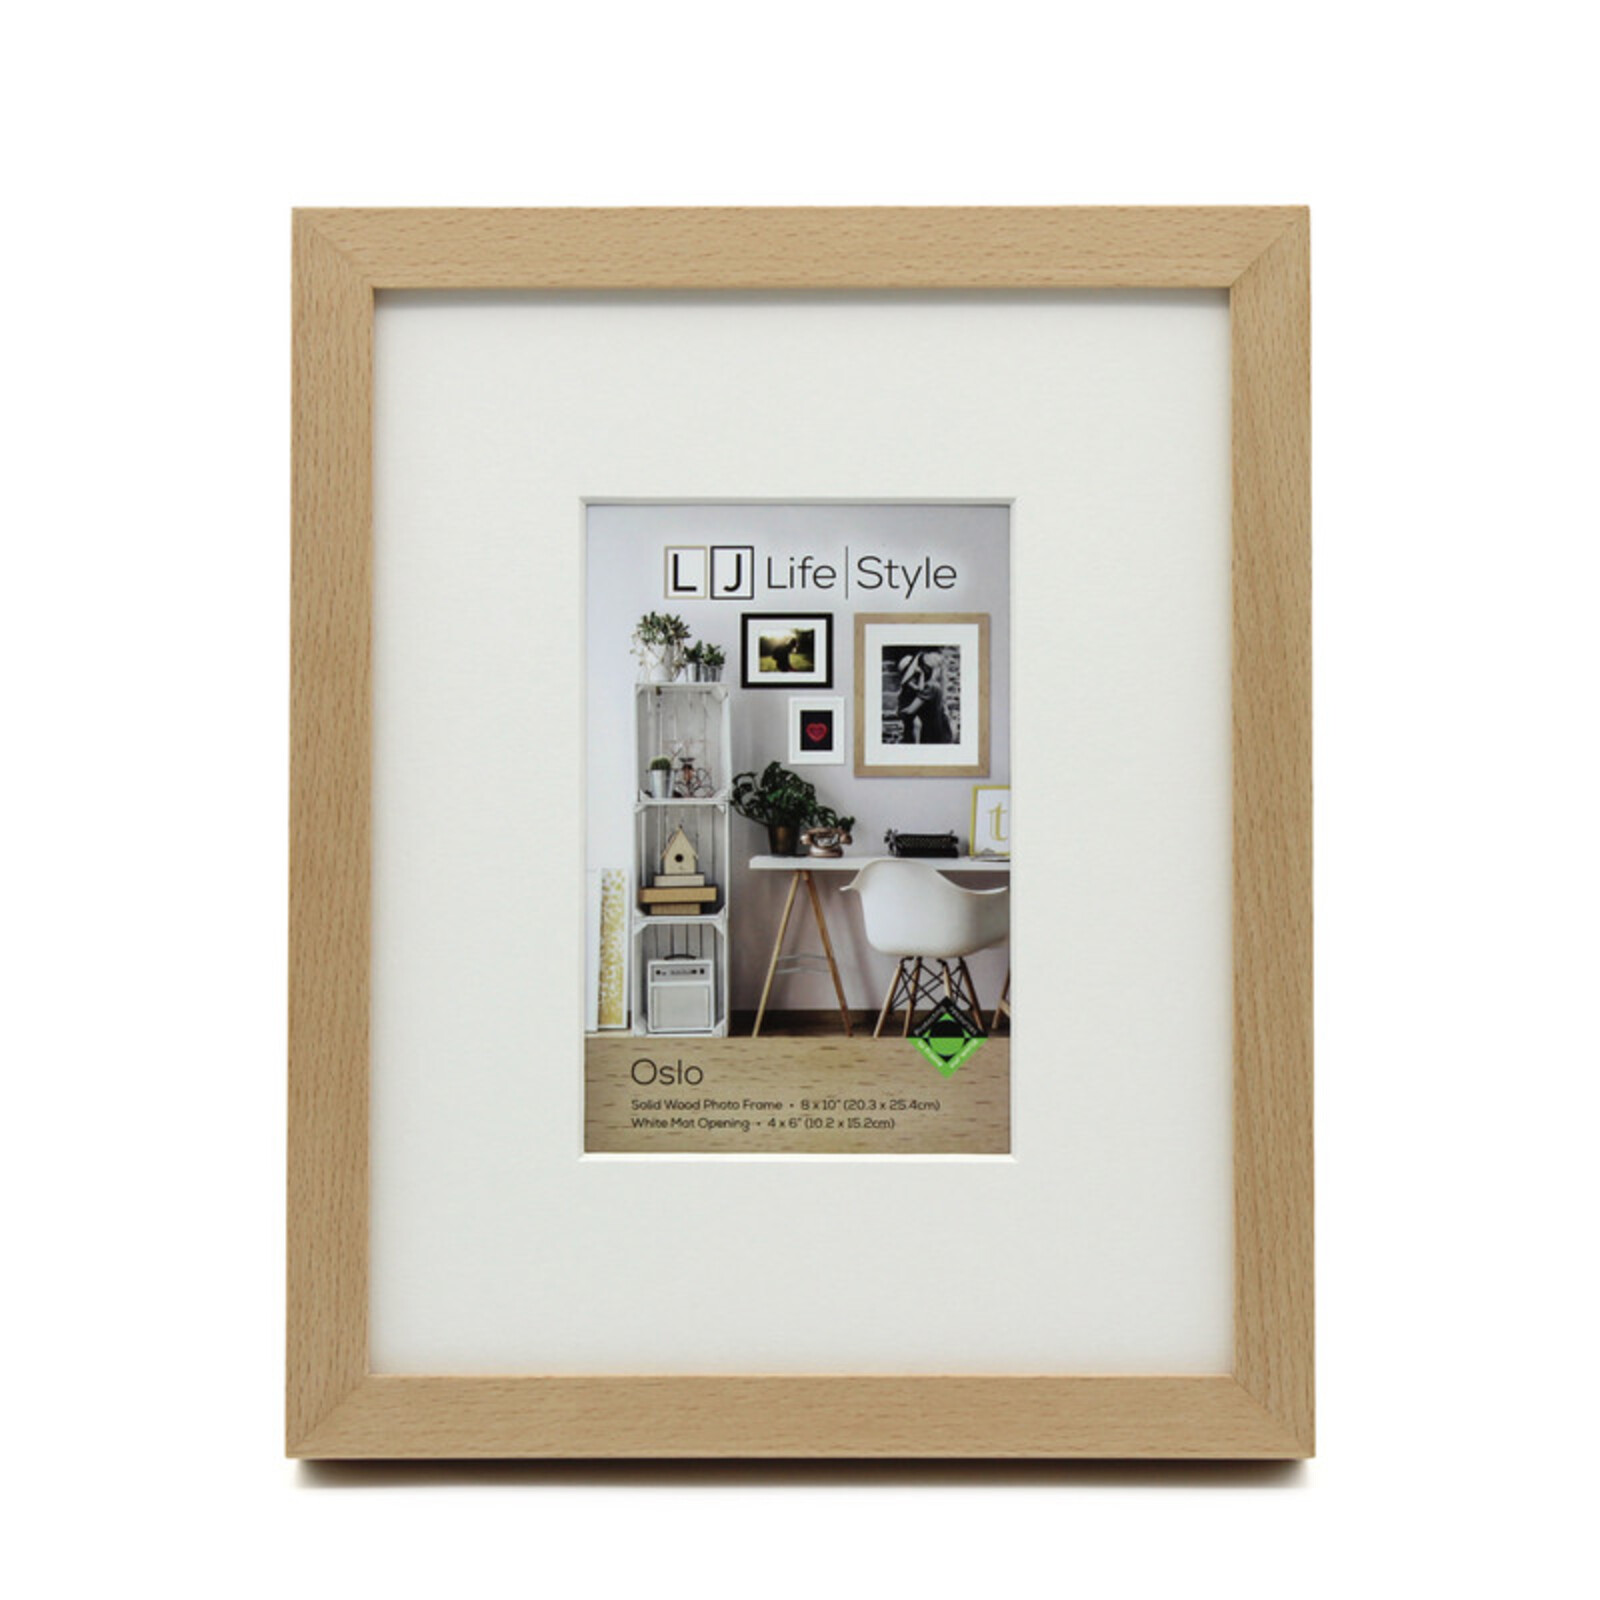 Oslo 8 x 10inch/4 x 6inch Opening Natural Photo Frame